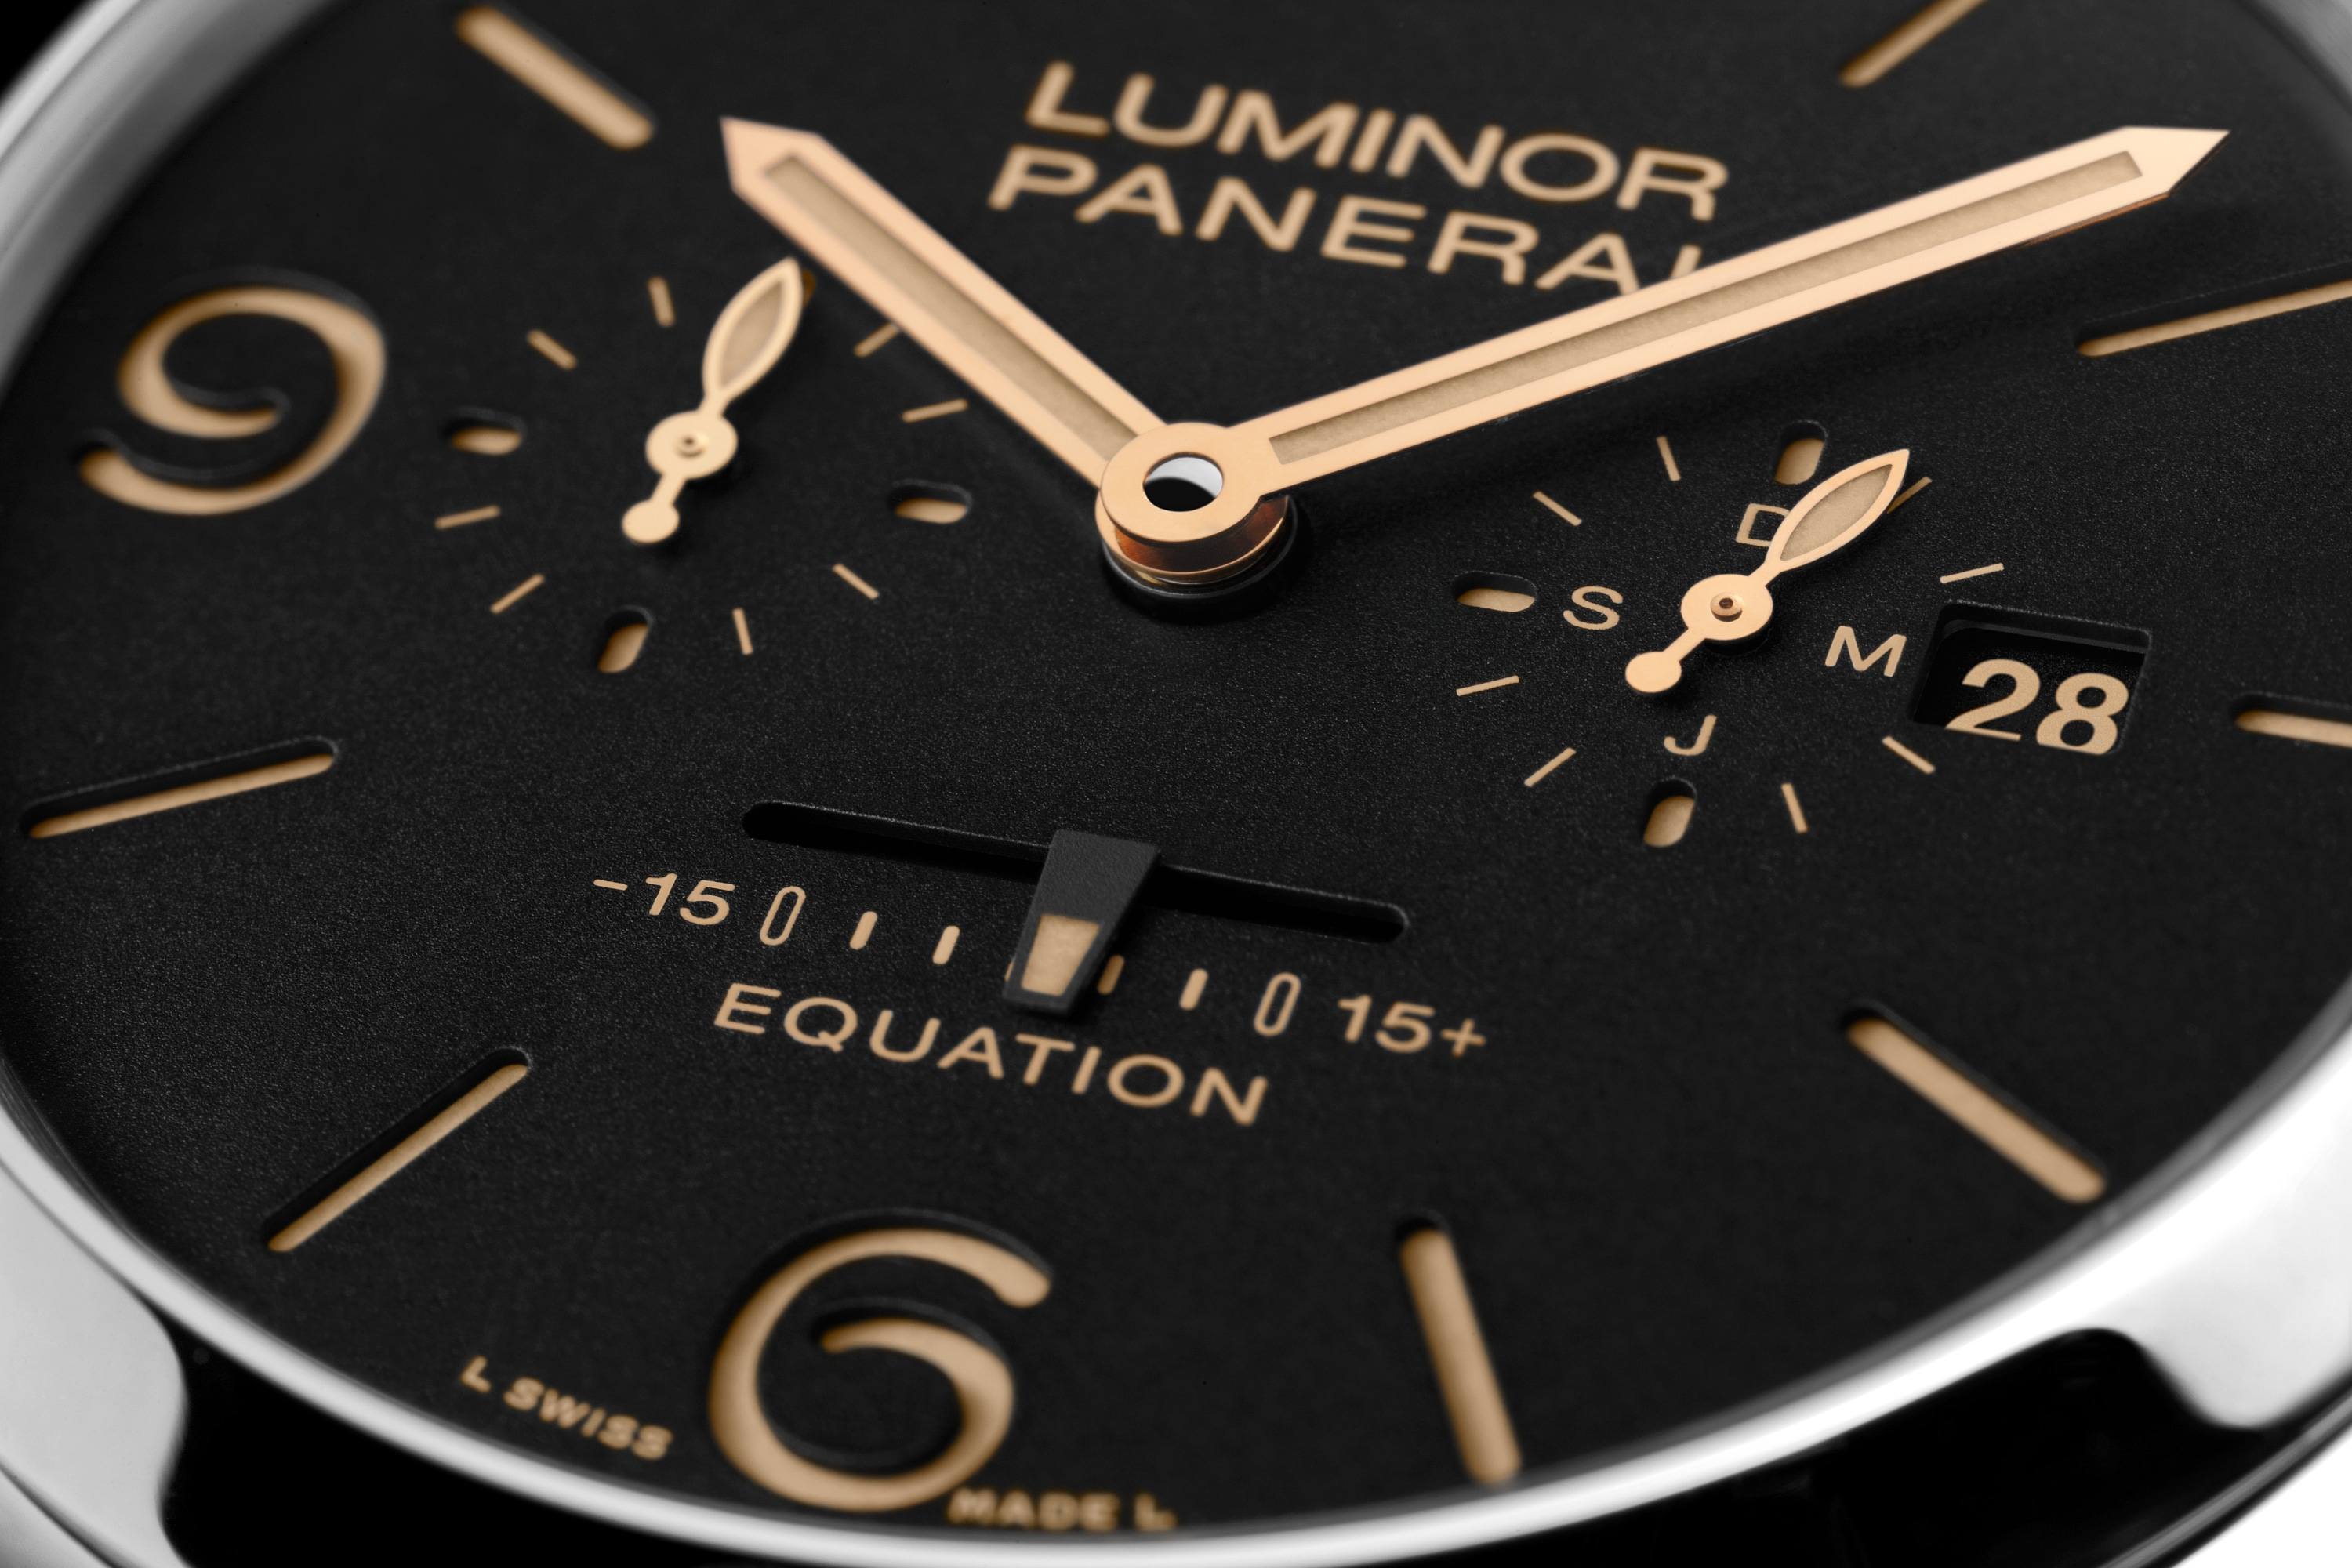 PNPAM00601 - Luminor 1950 Equation of Time 8 Days Acciaio - 47mm